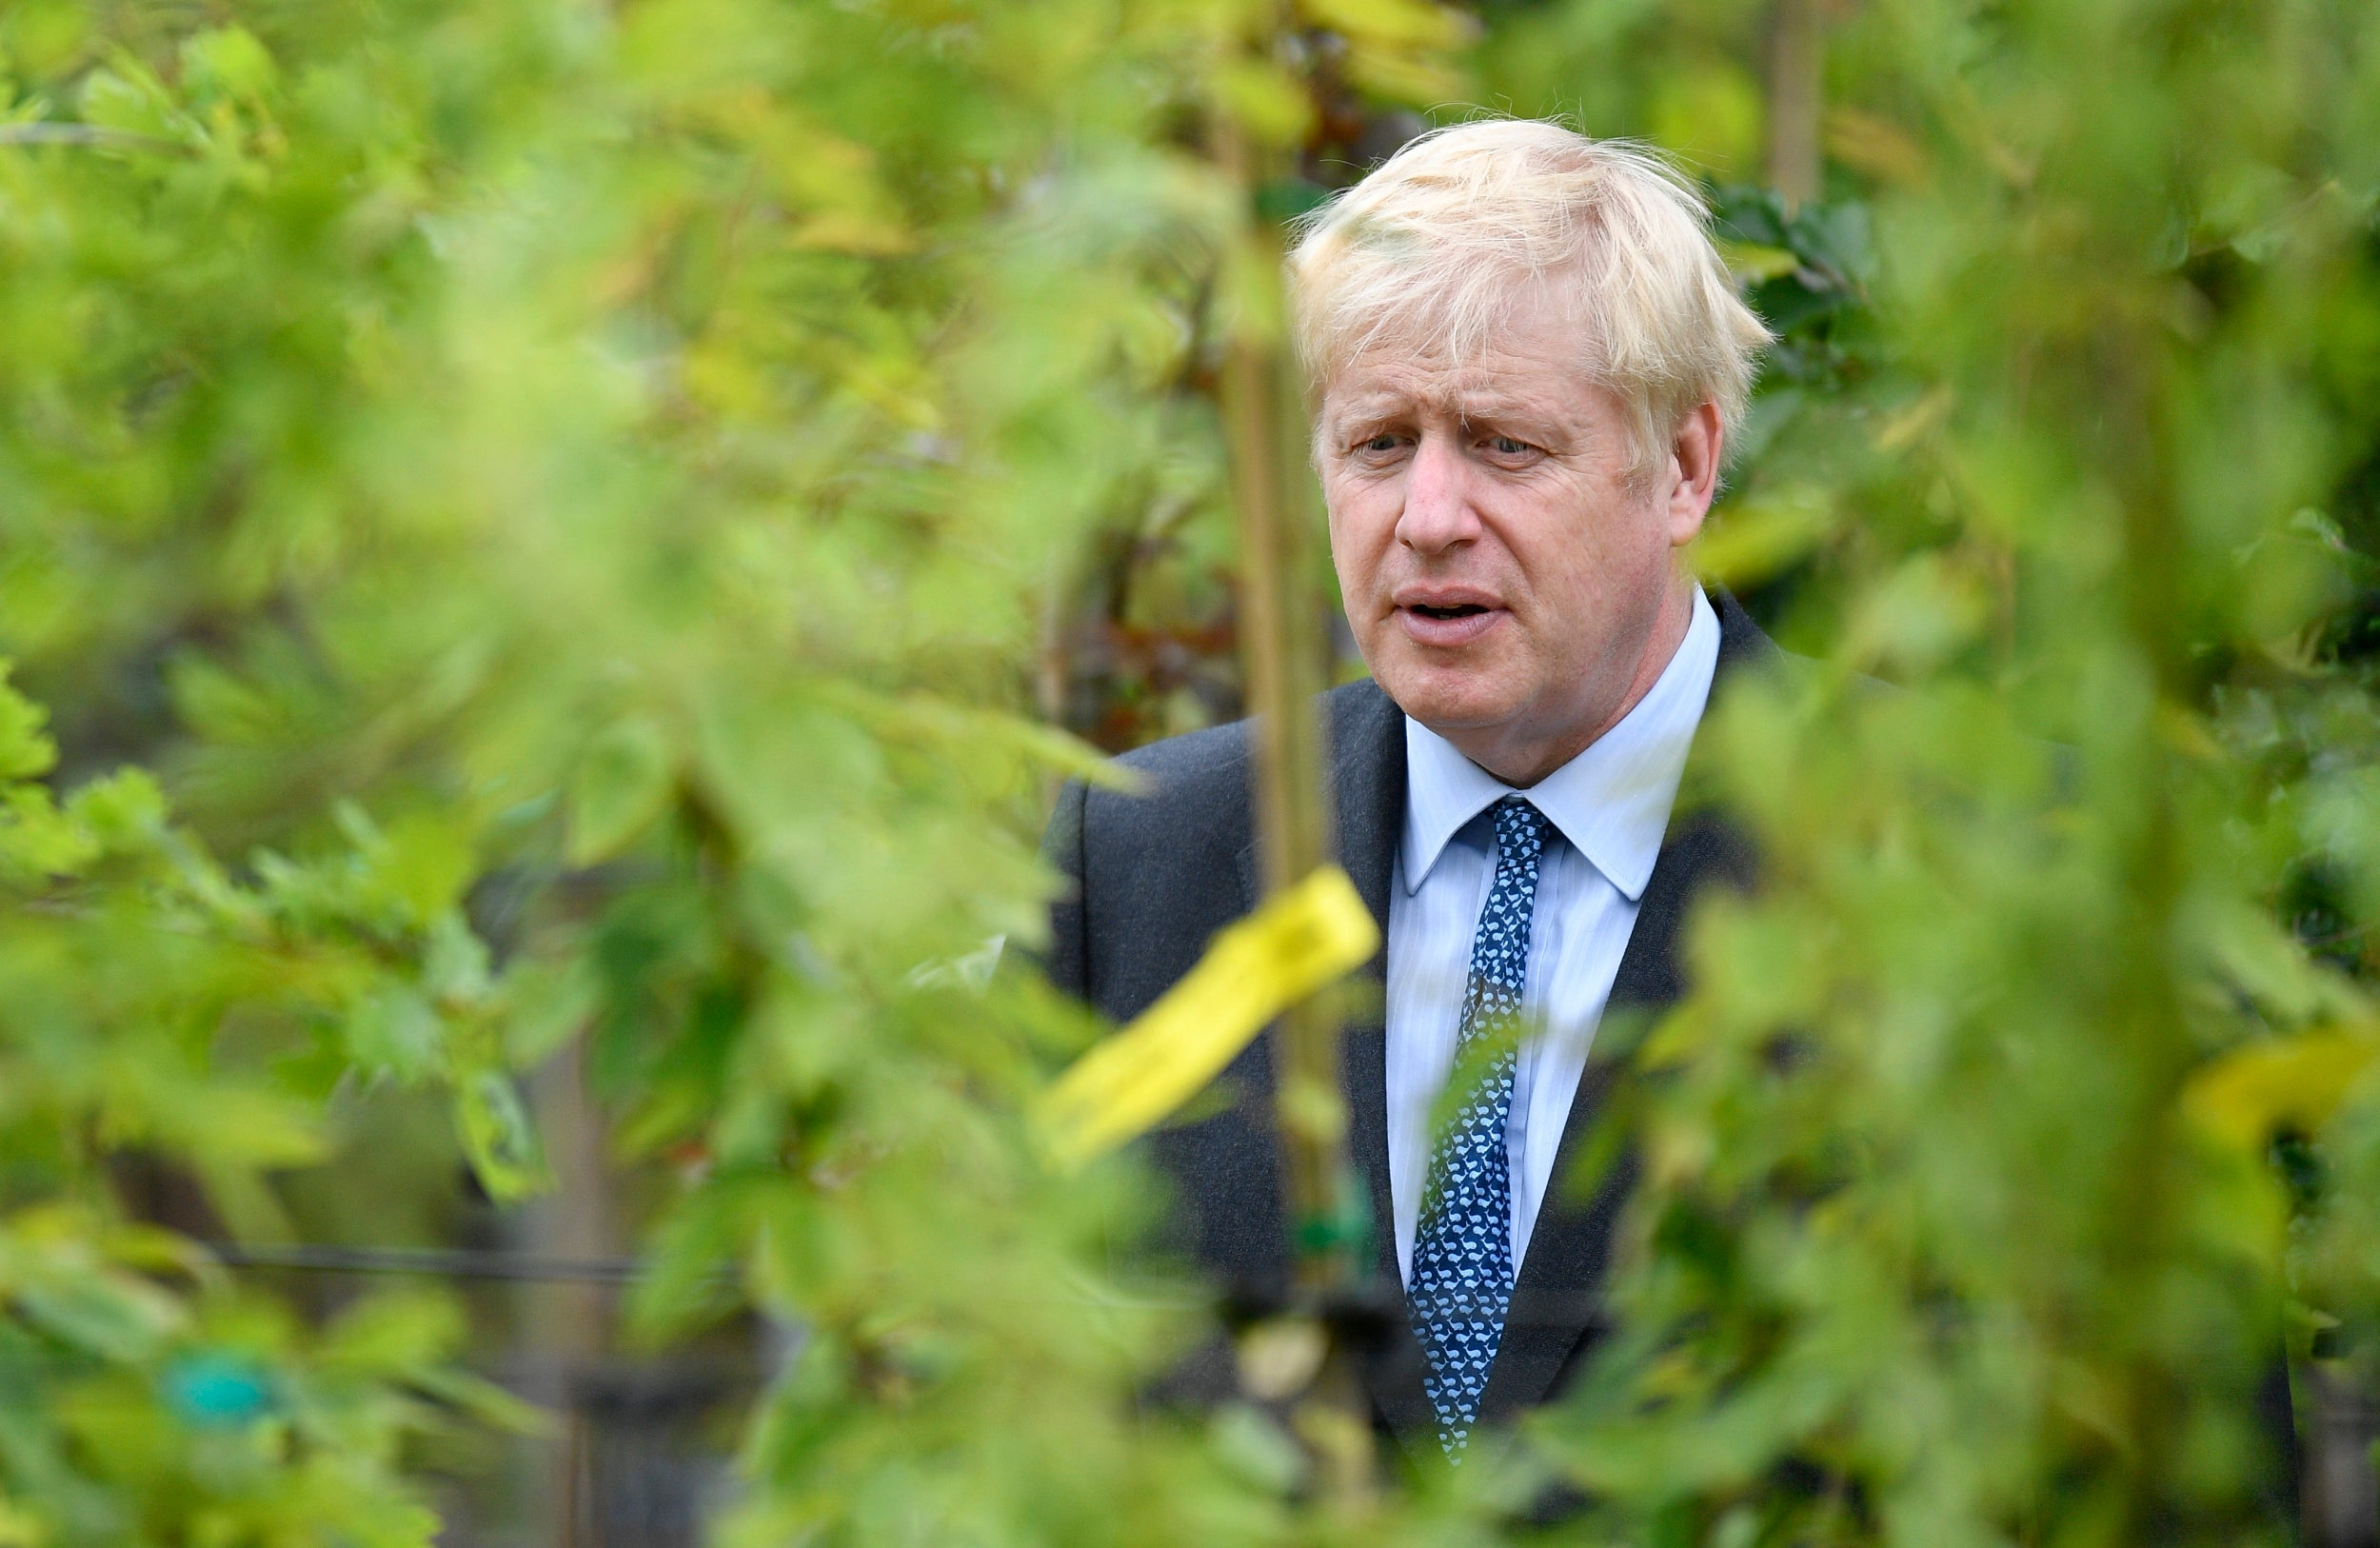 Senior Tory reveals plot to oust Boris Johnson on first day as PM in extraordinary revelation